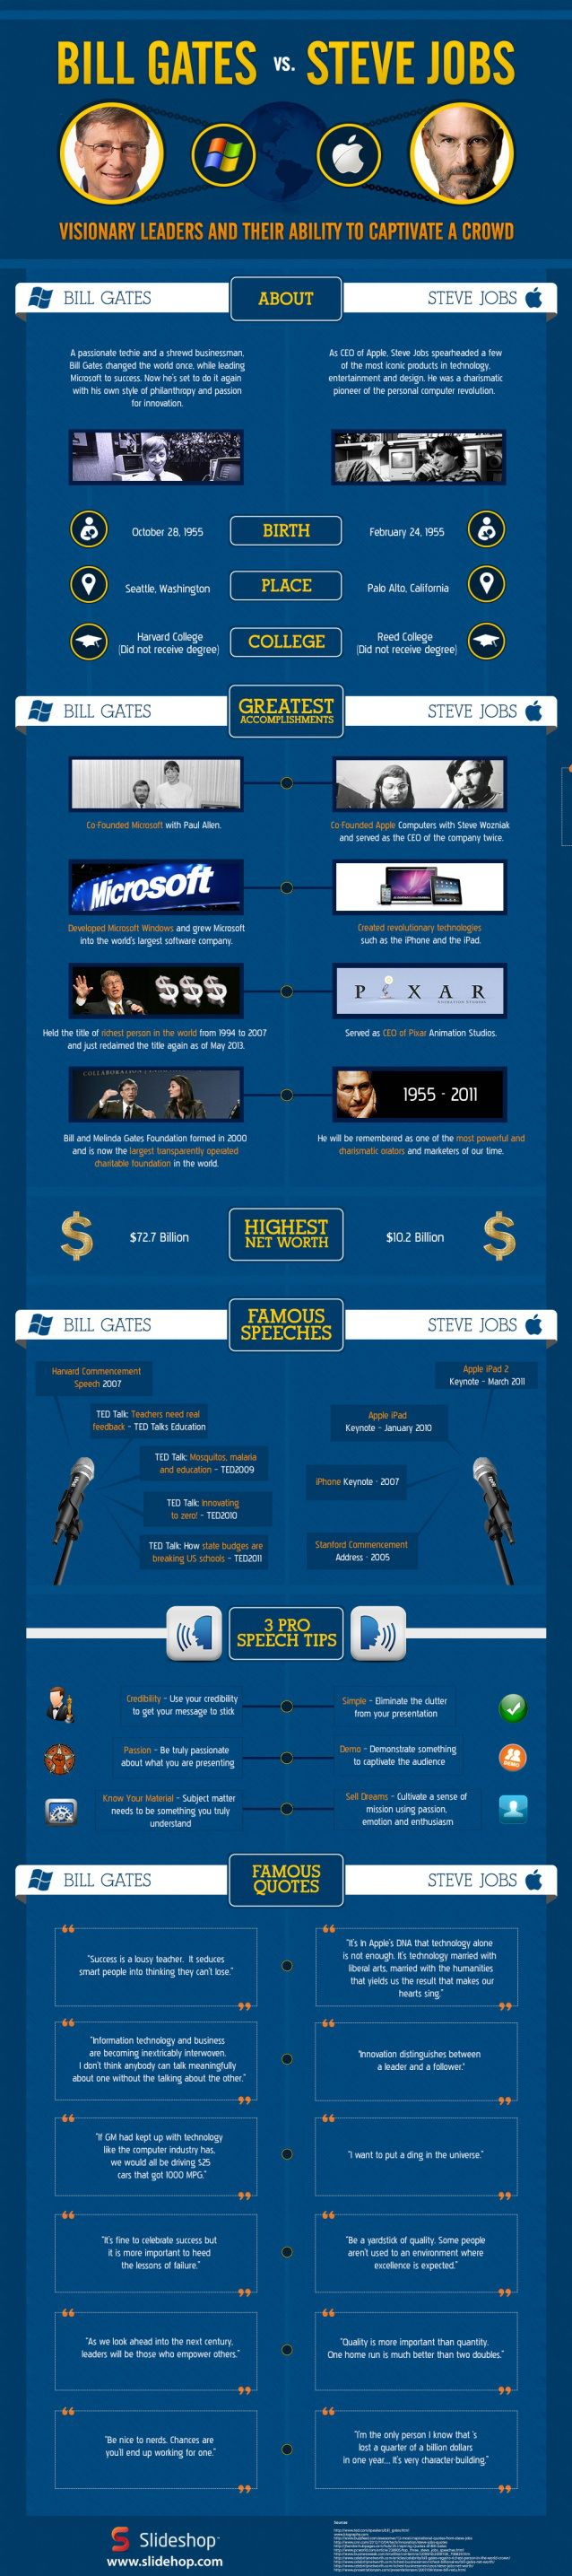 Bill Gates vs Steve Jobs #infografia #infographic #microsoft #apple